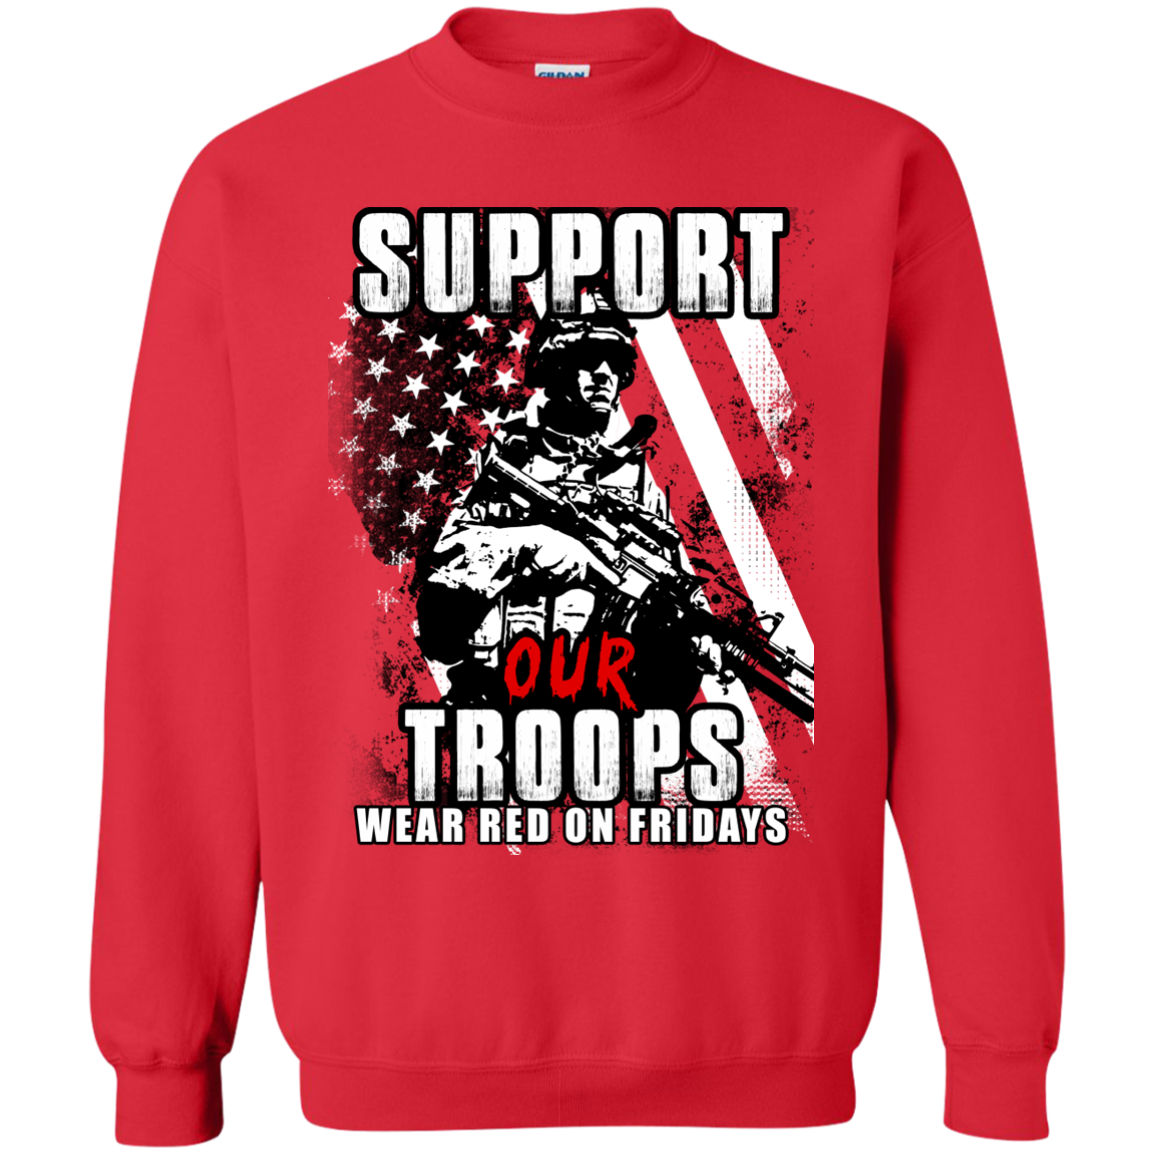 Support our troops wear red on fridays shirt hoodie tank for Red support our troops shirts